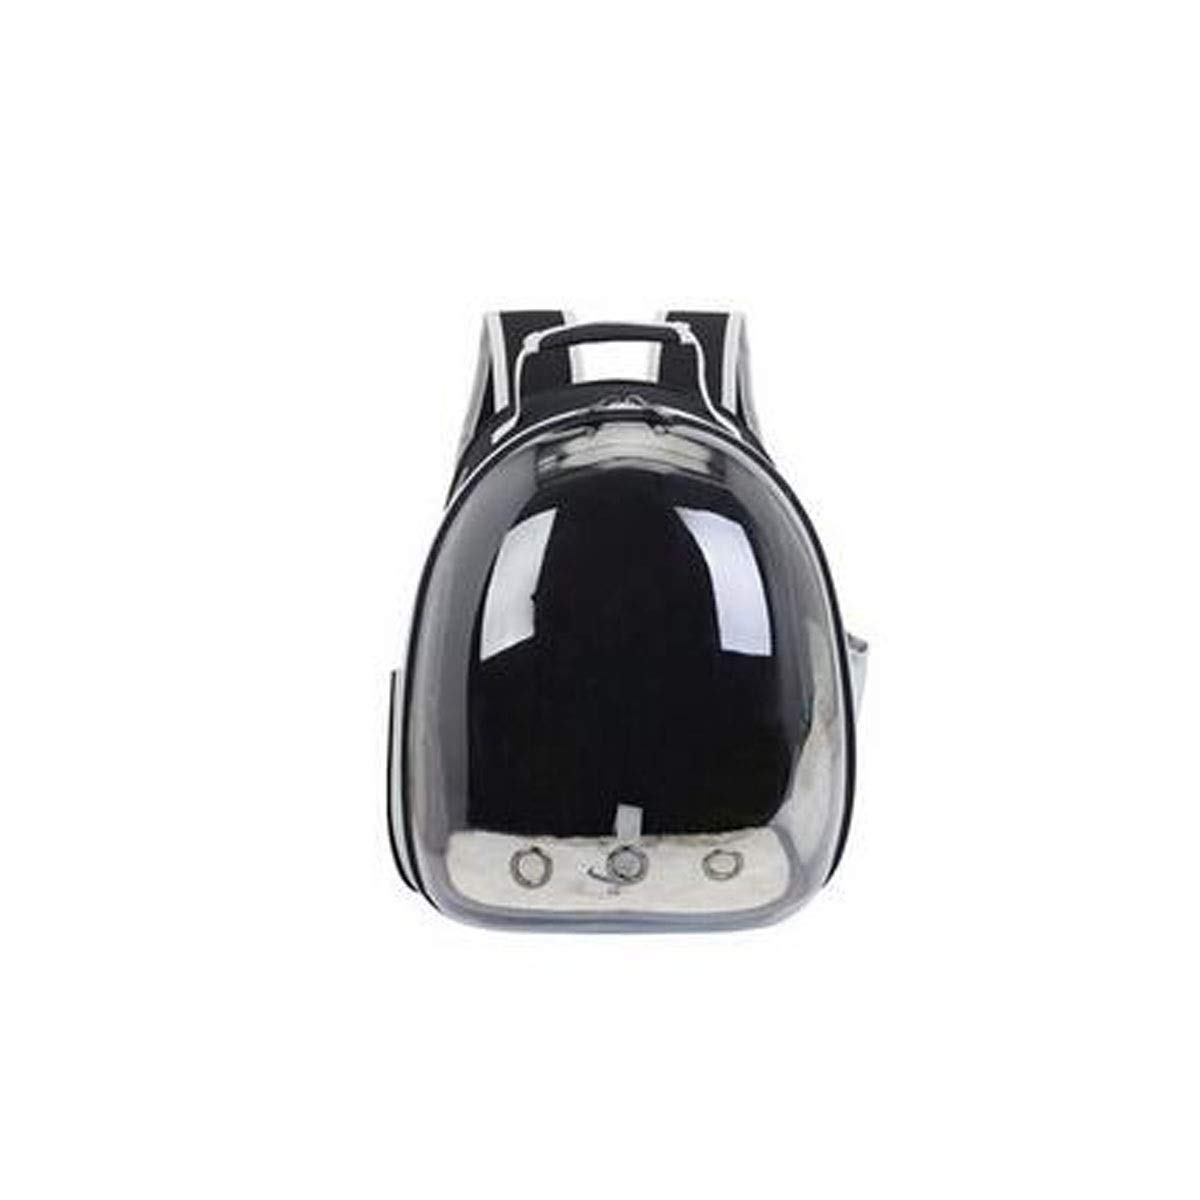 Black Chenjinxiang01 Outdoor pet backpack, space capsule bubble transparent backpack, suitable for mediumsized pets for travel, hiking (color   Pink)